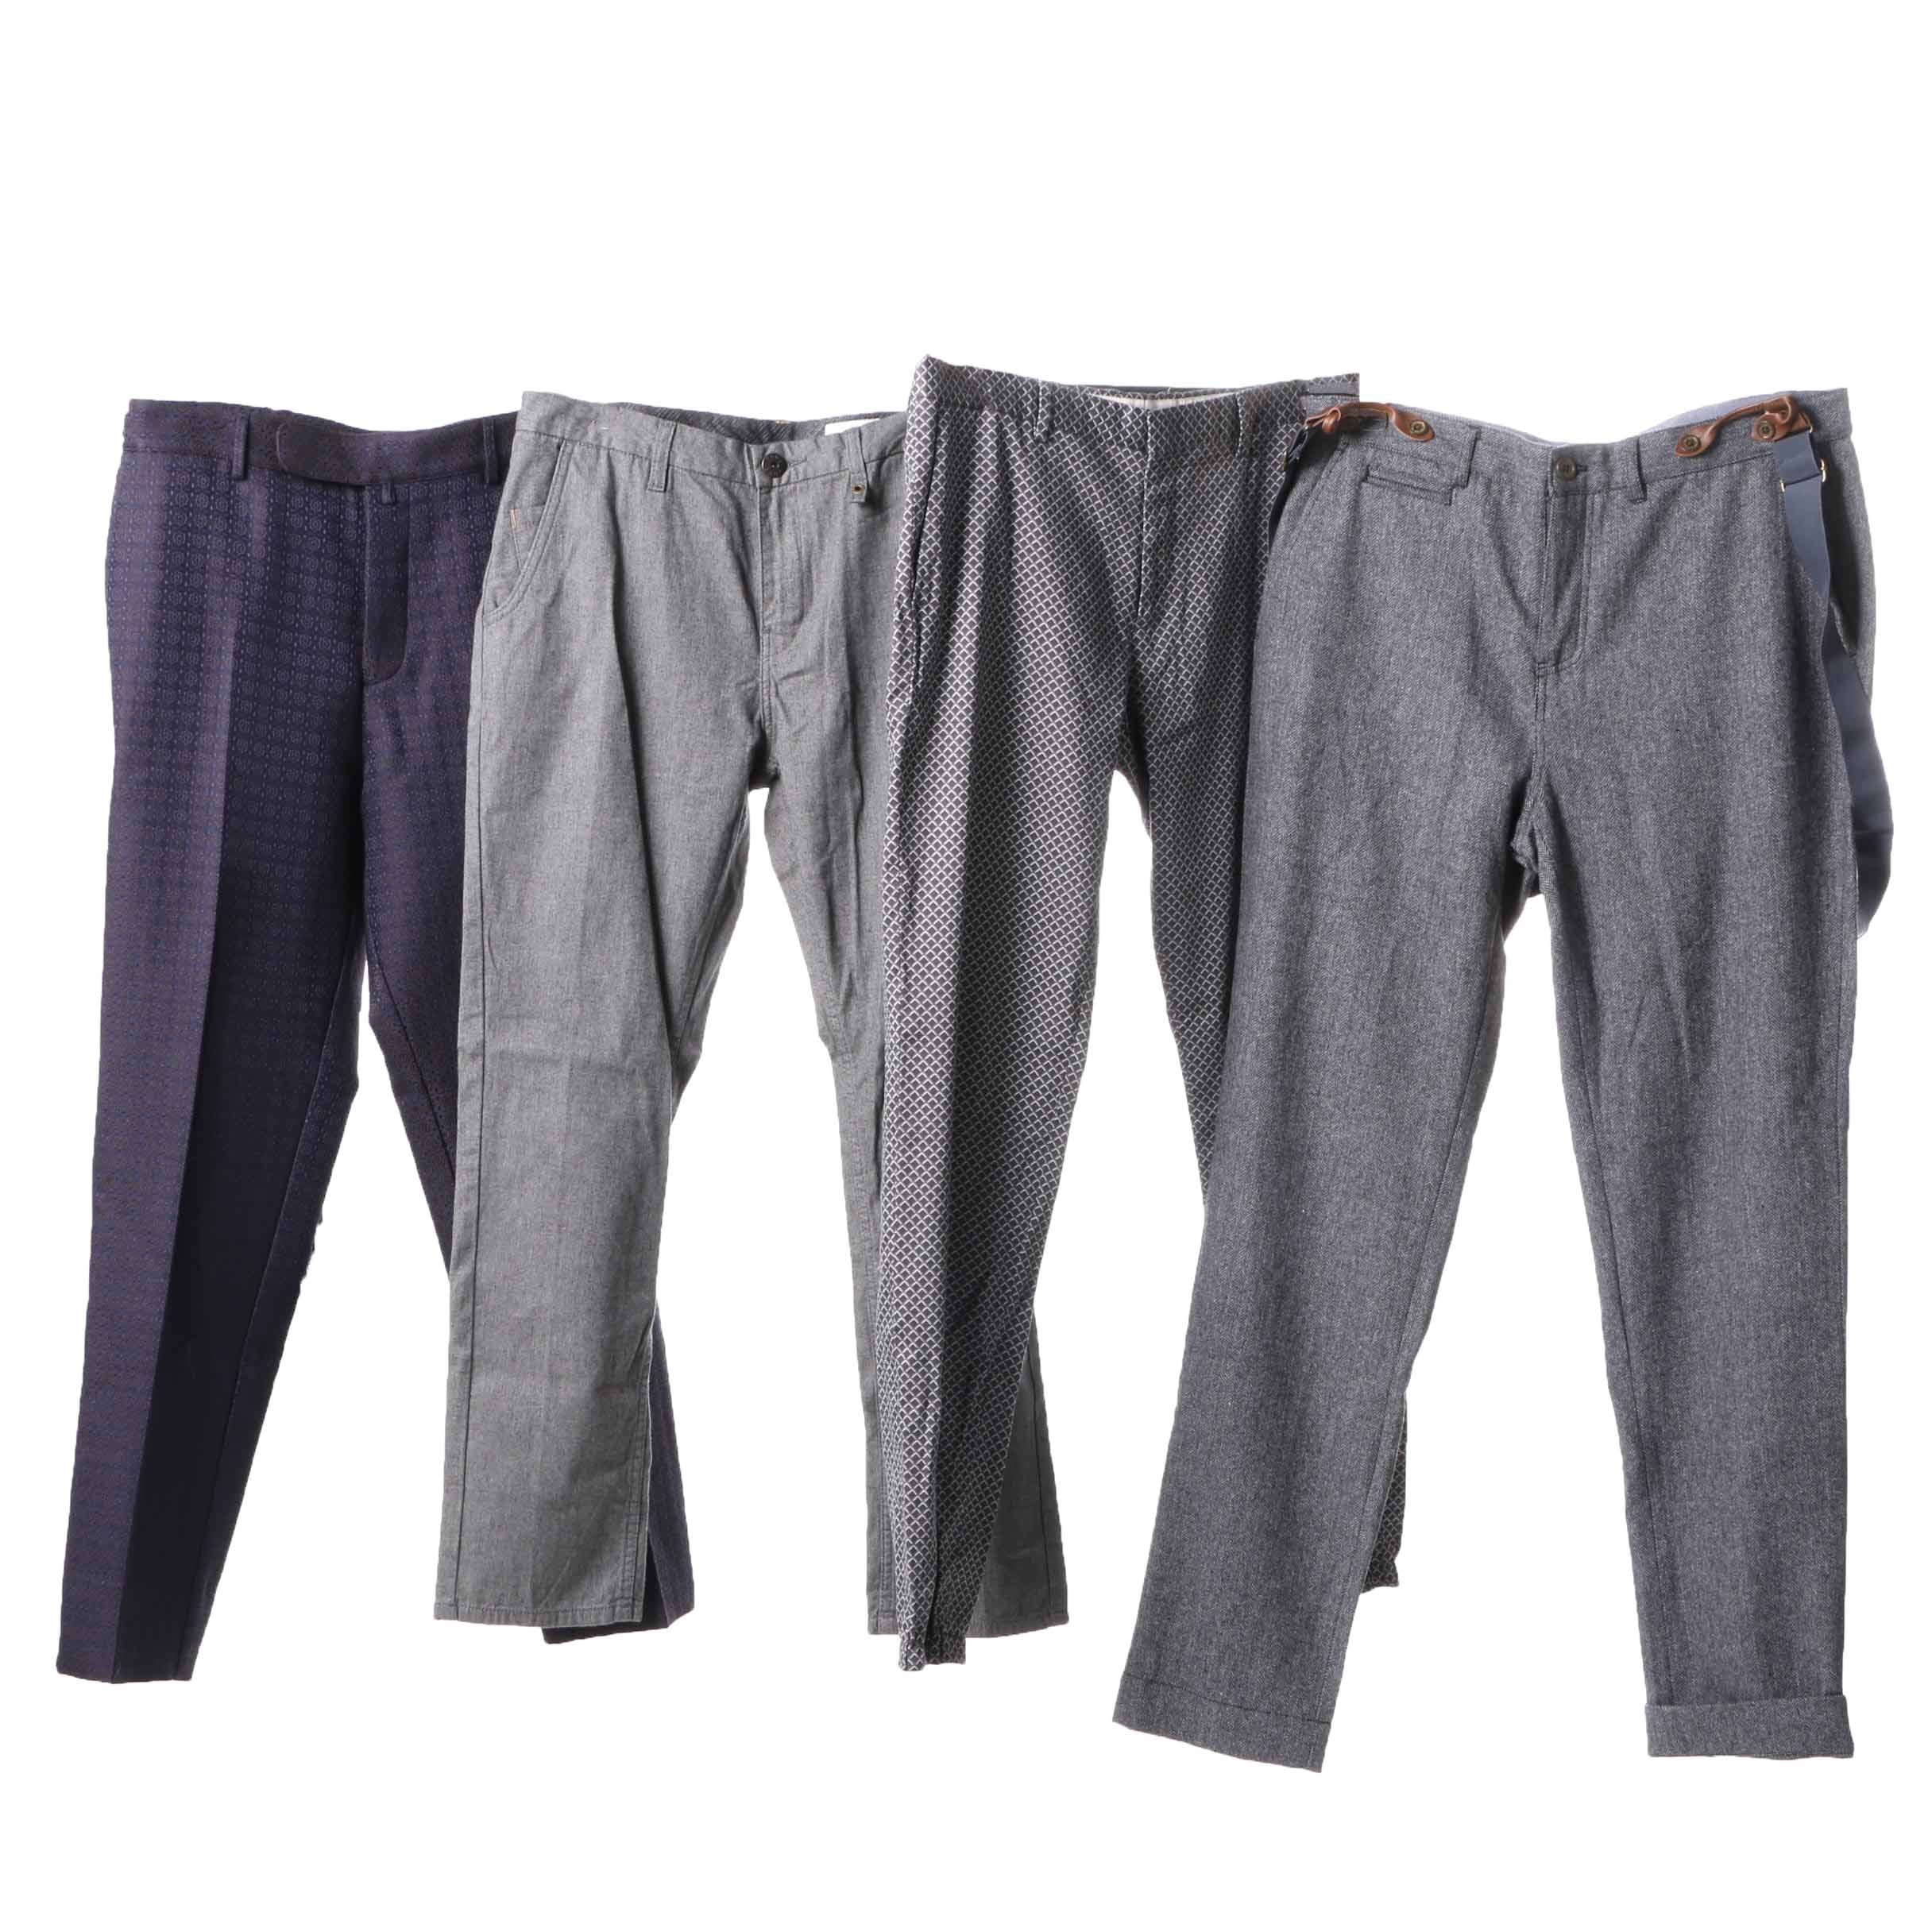 Men's Slacks Including Gucci and Paul Smith